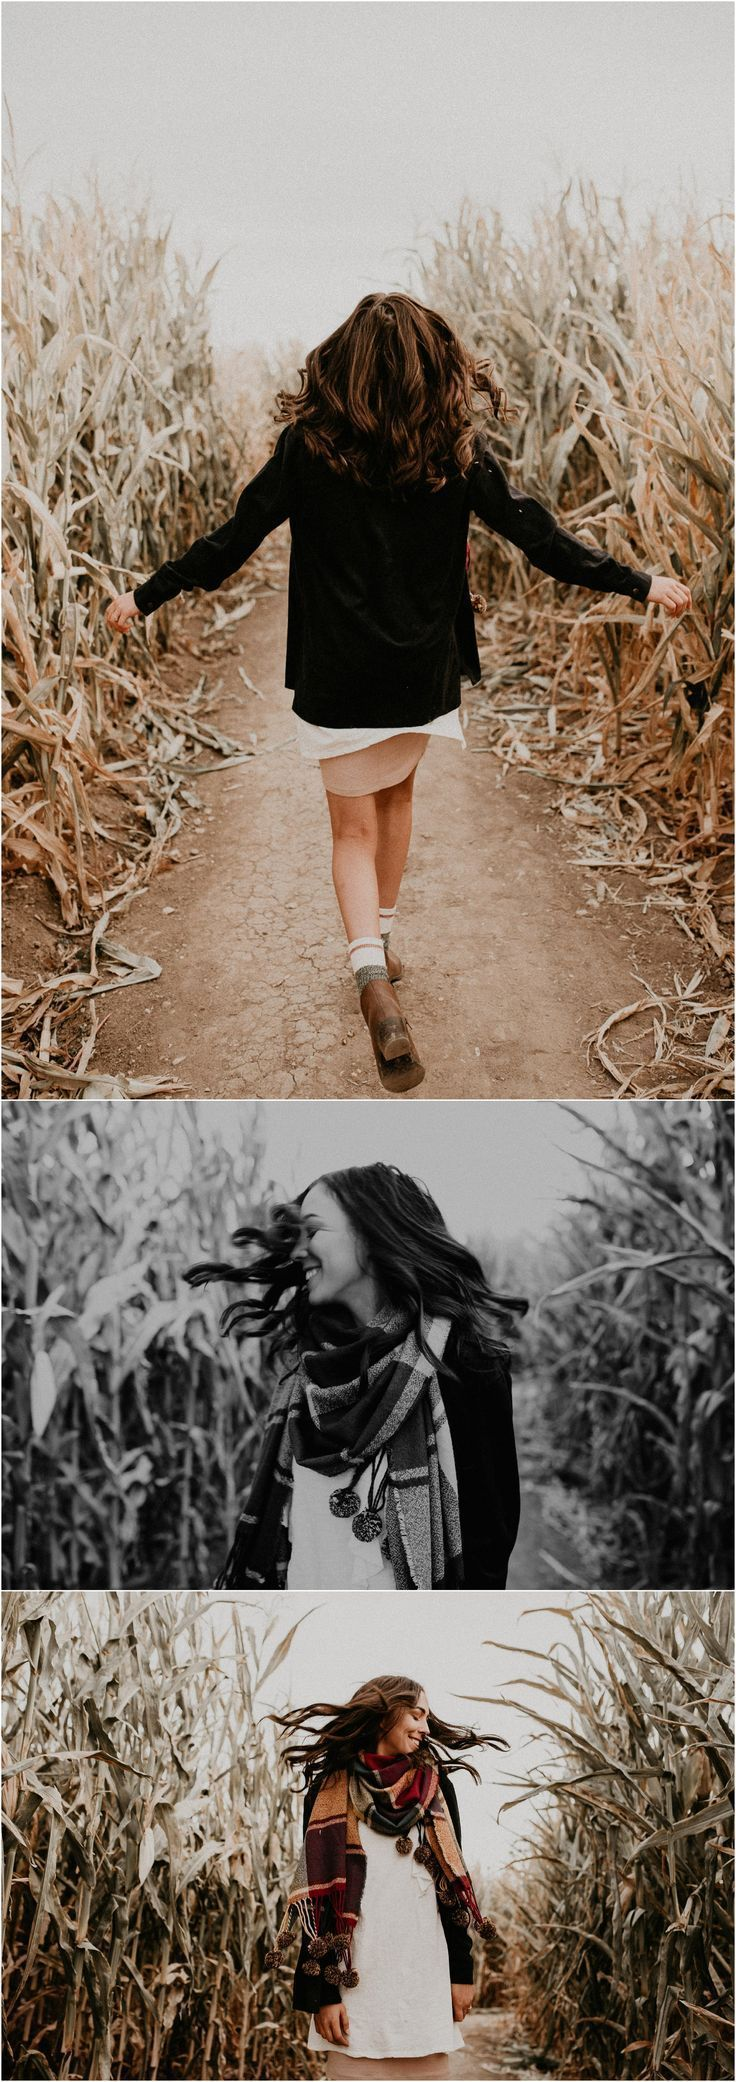 Makayla Madden Photography-Shaina // Idaho Farmstead Fall Inspired Session- Boise Senior Photographer Makayla Madden Photography-Blog // Boise, ID Wedding, Boudoir, and Senior Photographer Makayla Madden Photography